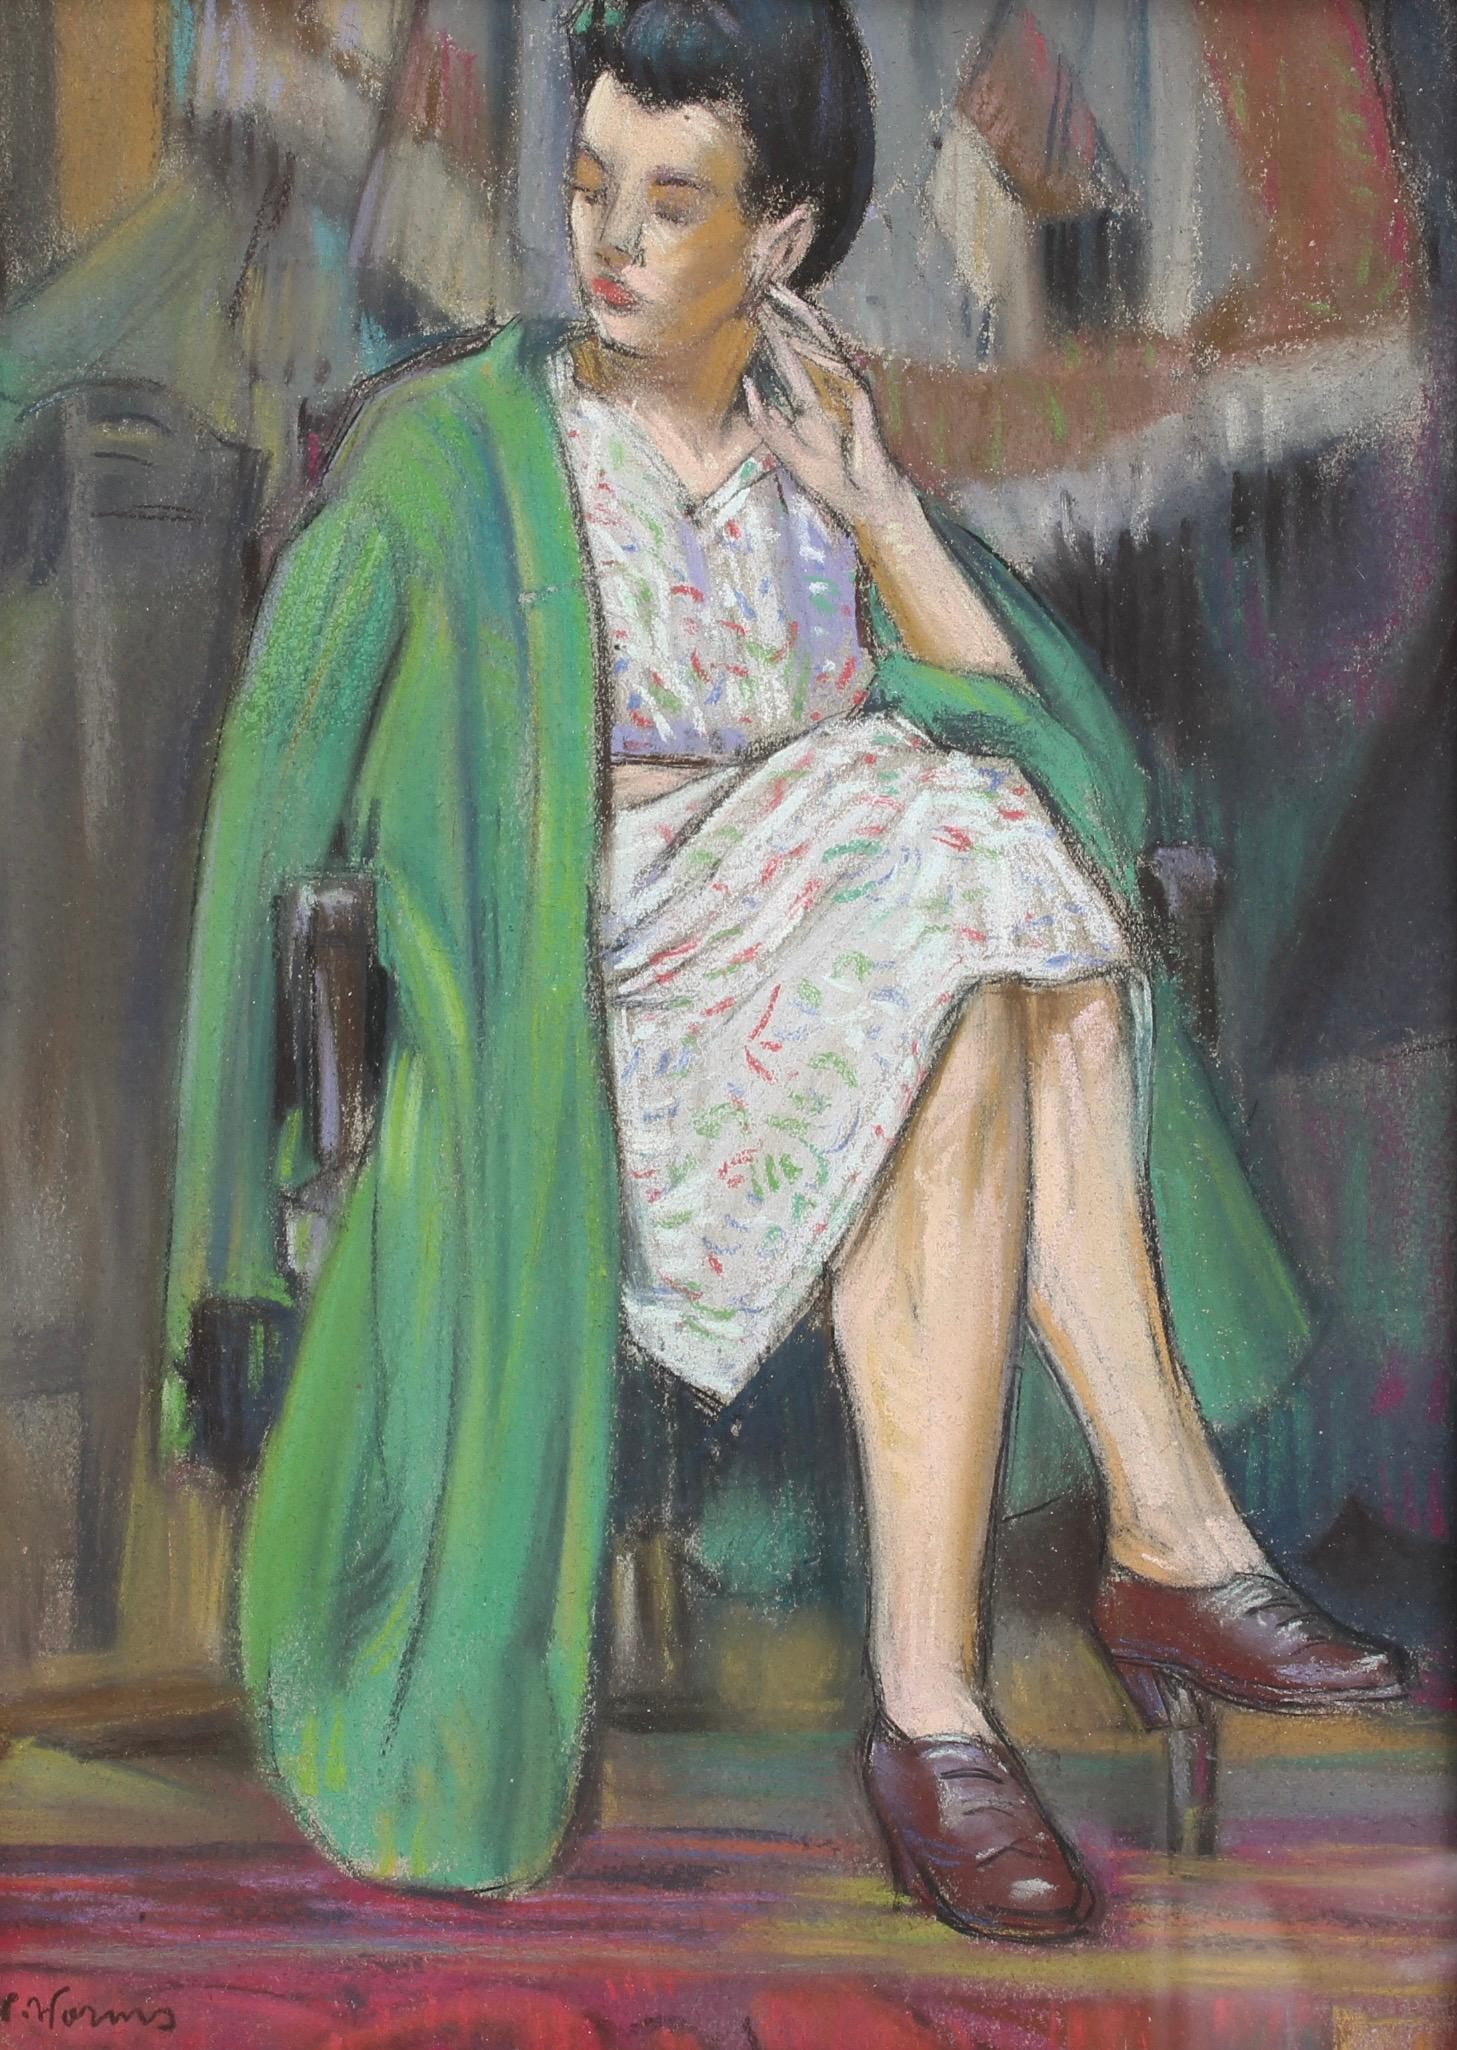 'The Green Coat' by W. Worms